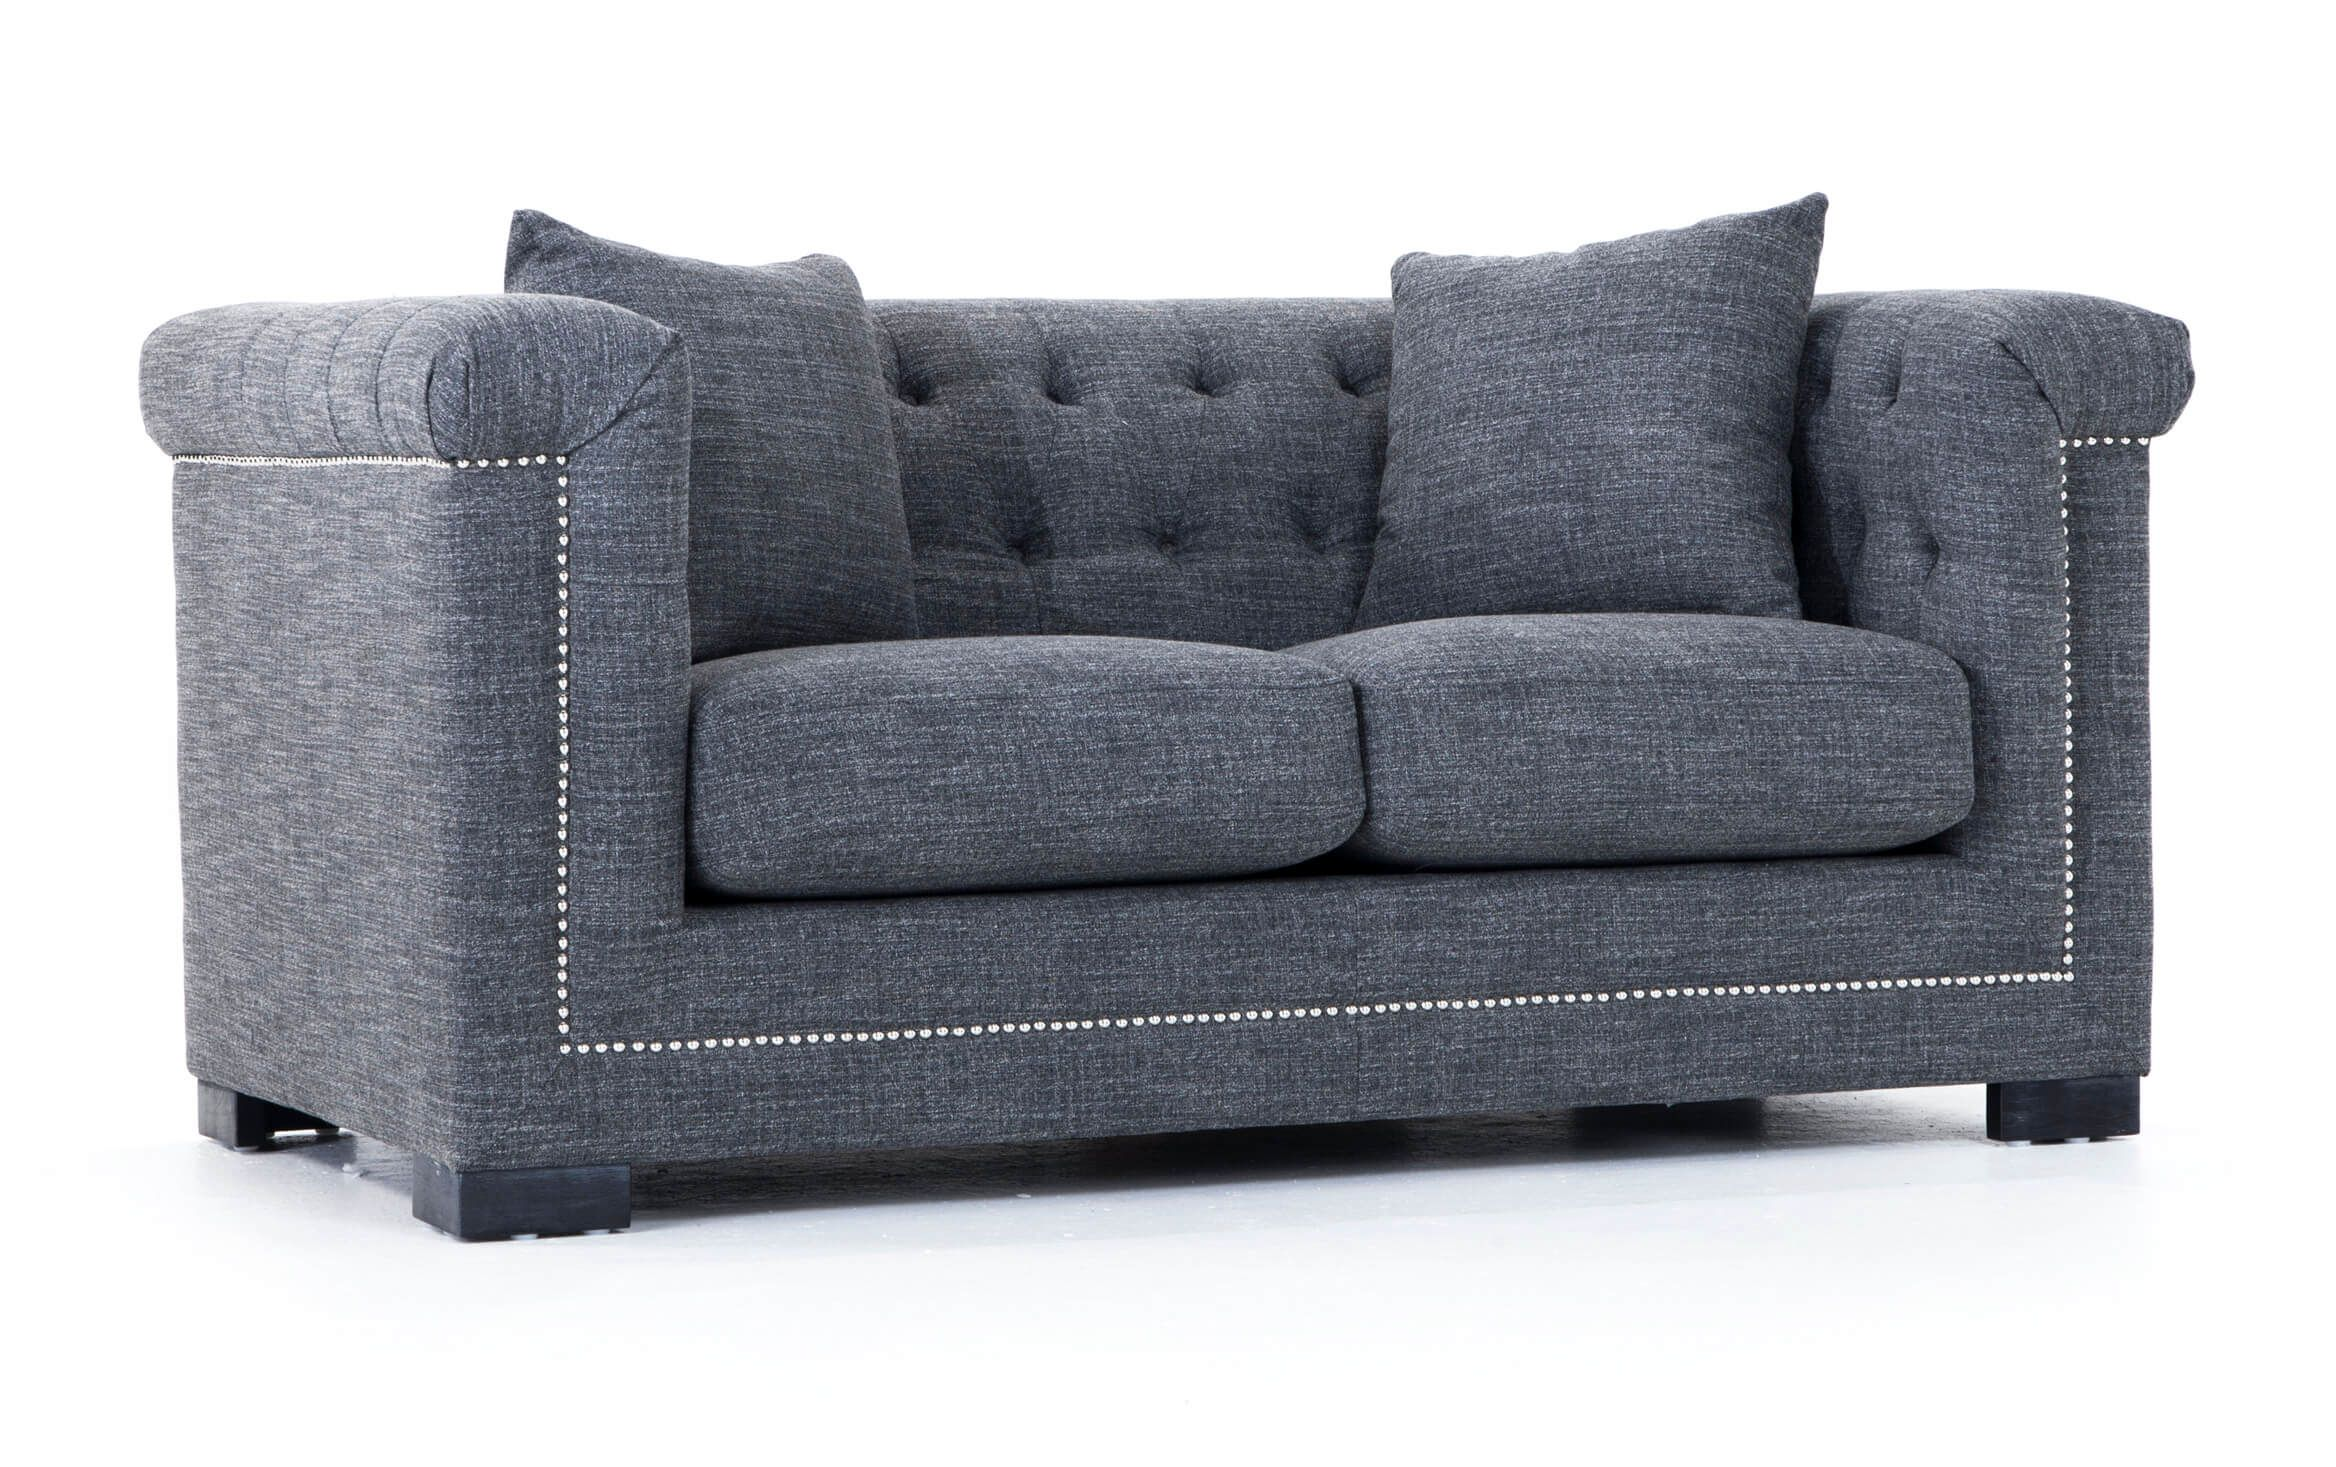 Admirable Melrose Sofa Loveseat Home Decor Pabps2019 Chair Design Images Pabps2019Com